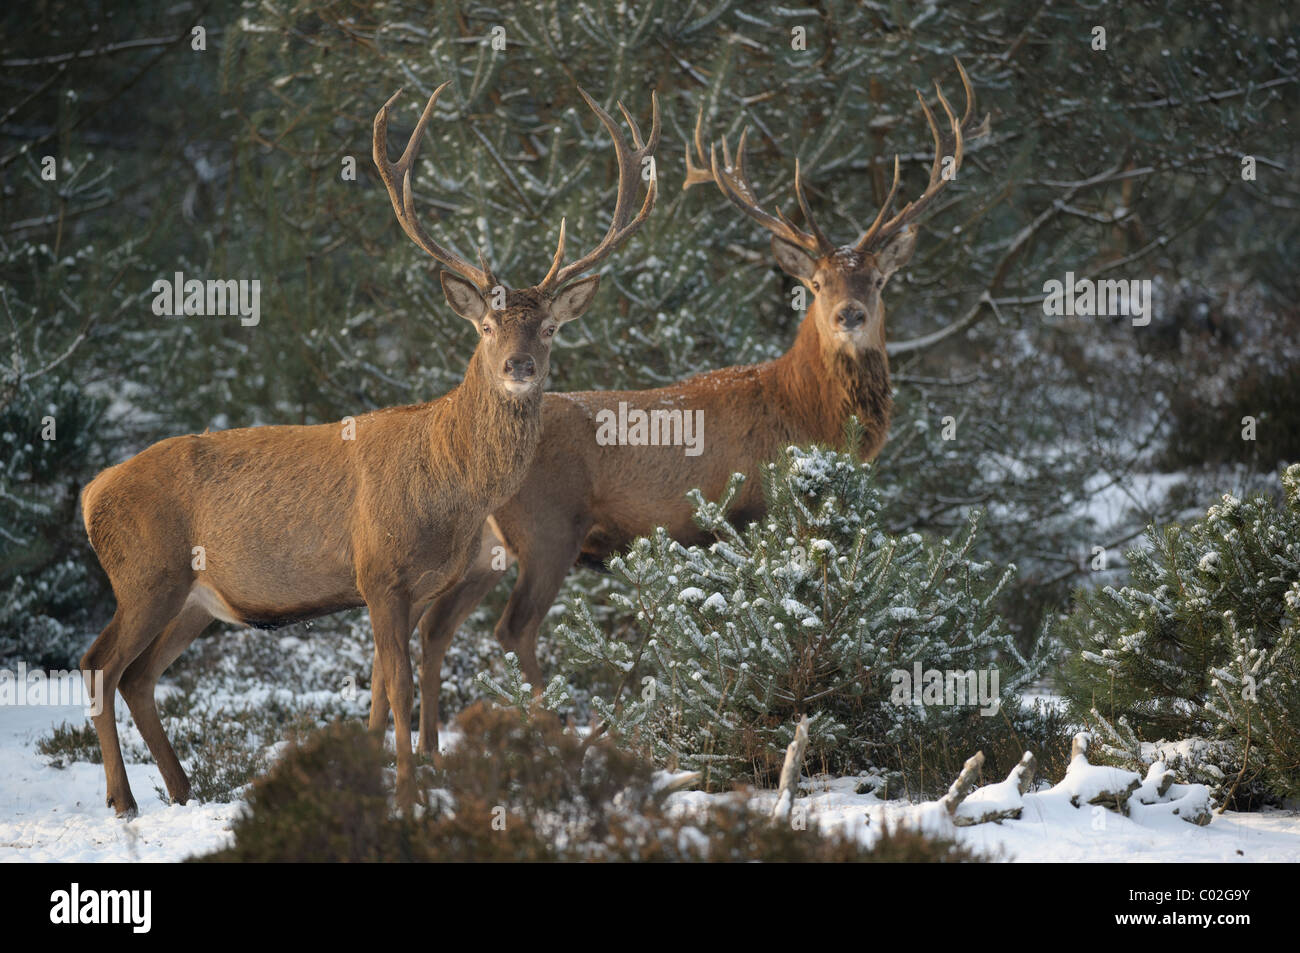 Red Deer (Cervus elaphus). Two stags standing in snowy pine forest while looking into the camera, Veluwe, Netherlands. - Stock Image